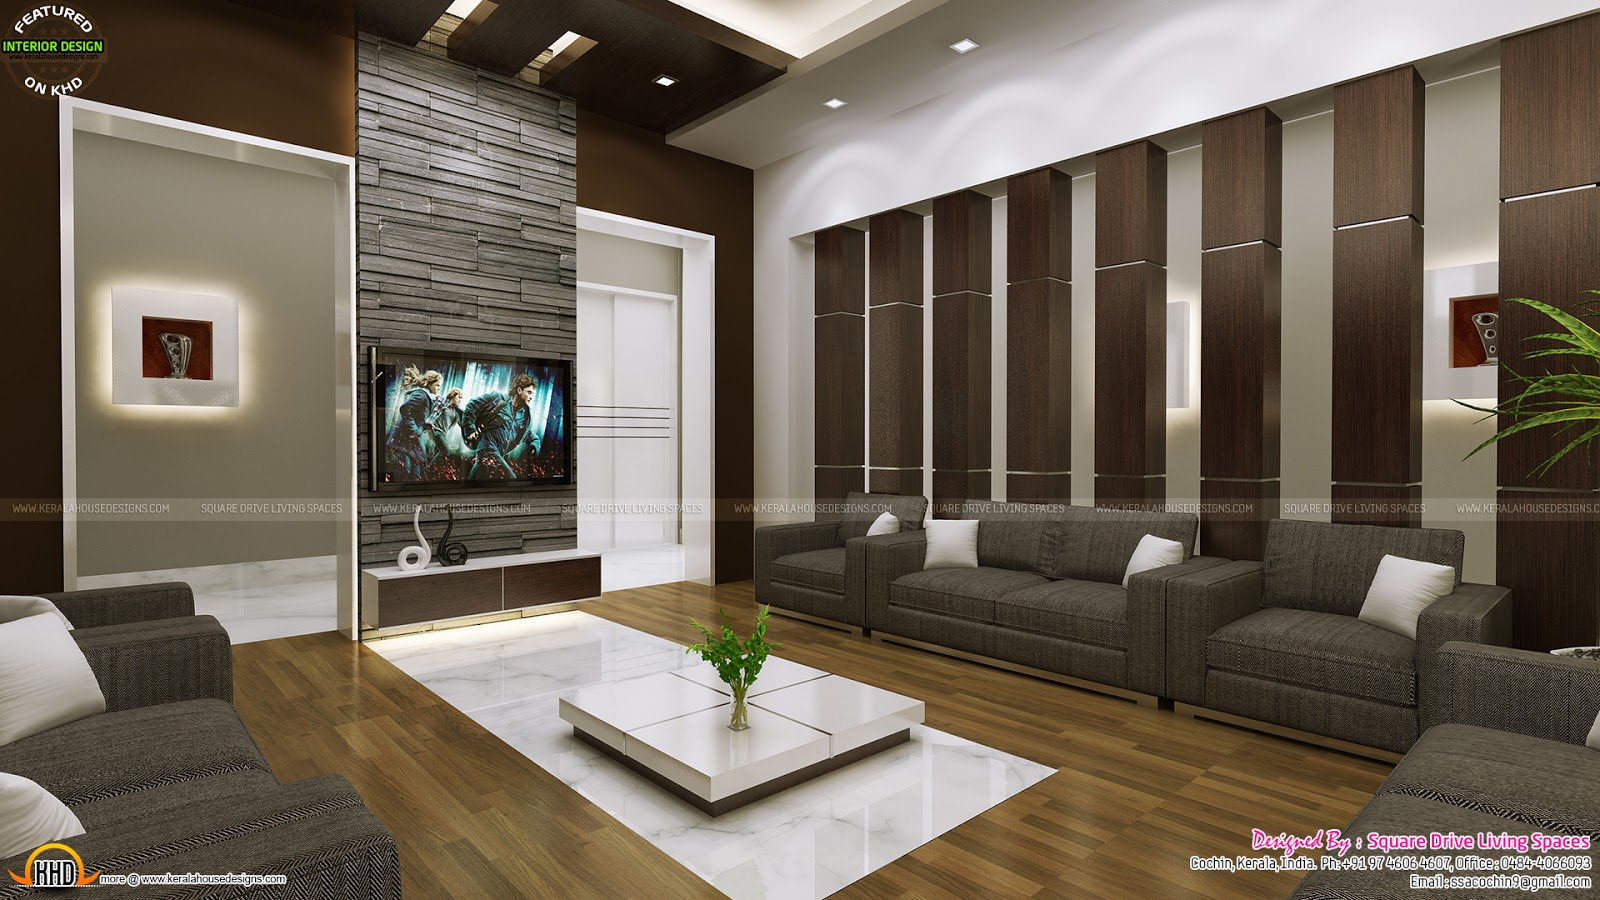 Attractive home interior ideas kerala home design and for Home indoor design